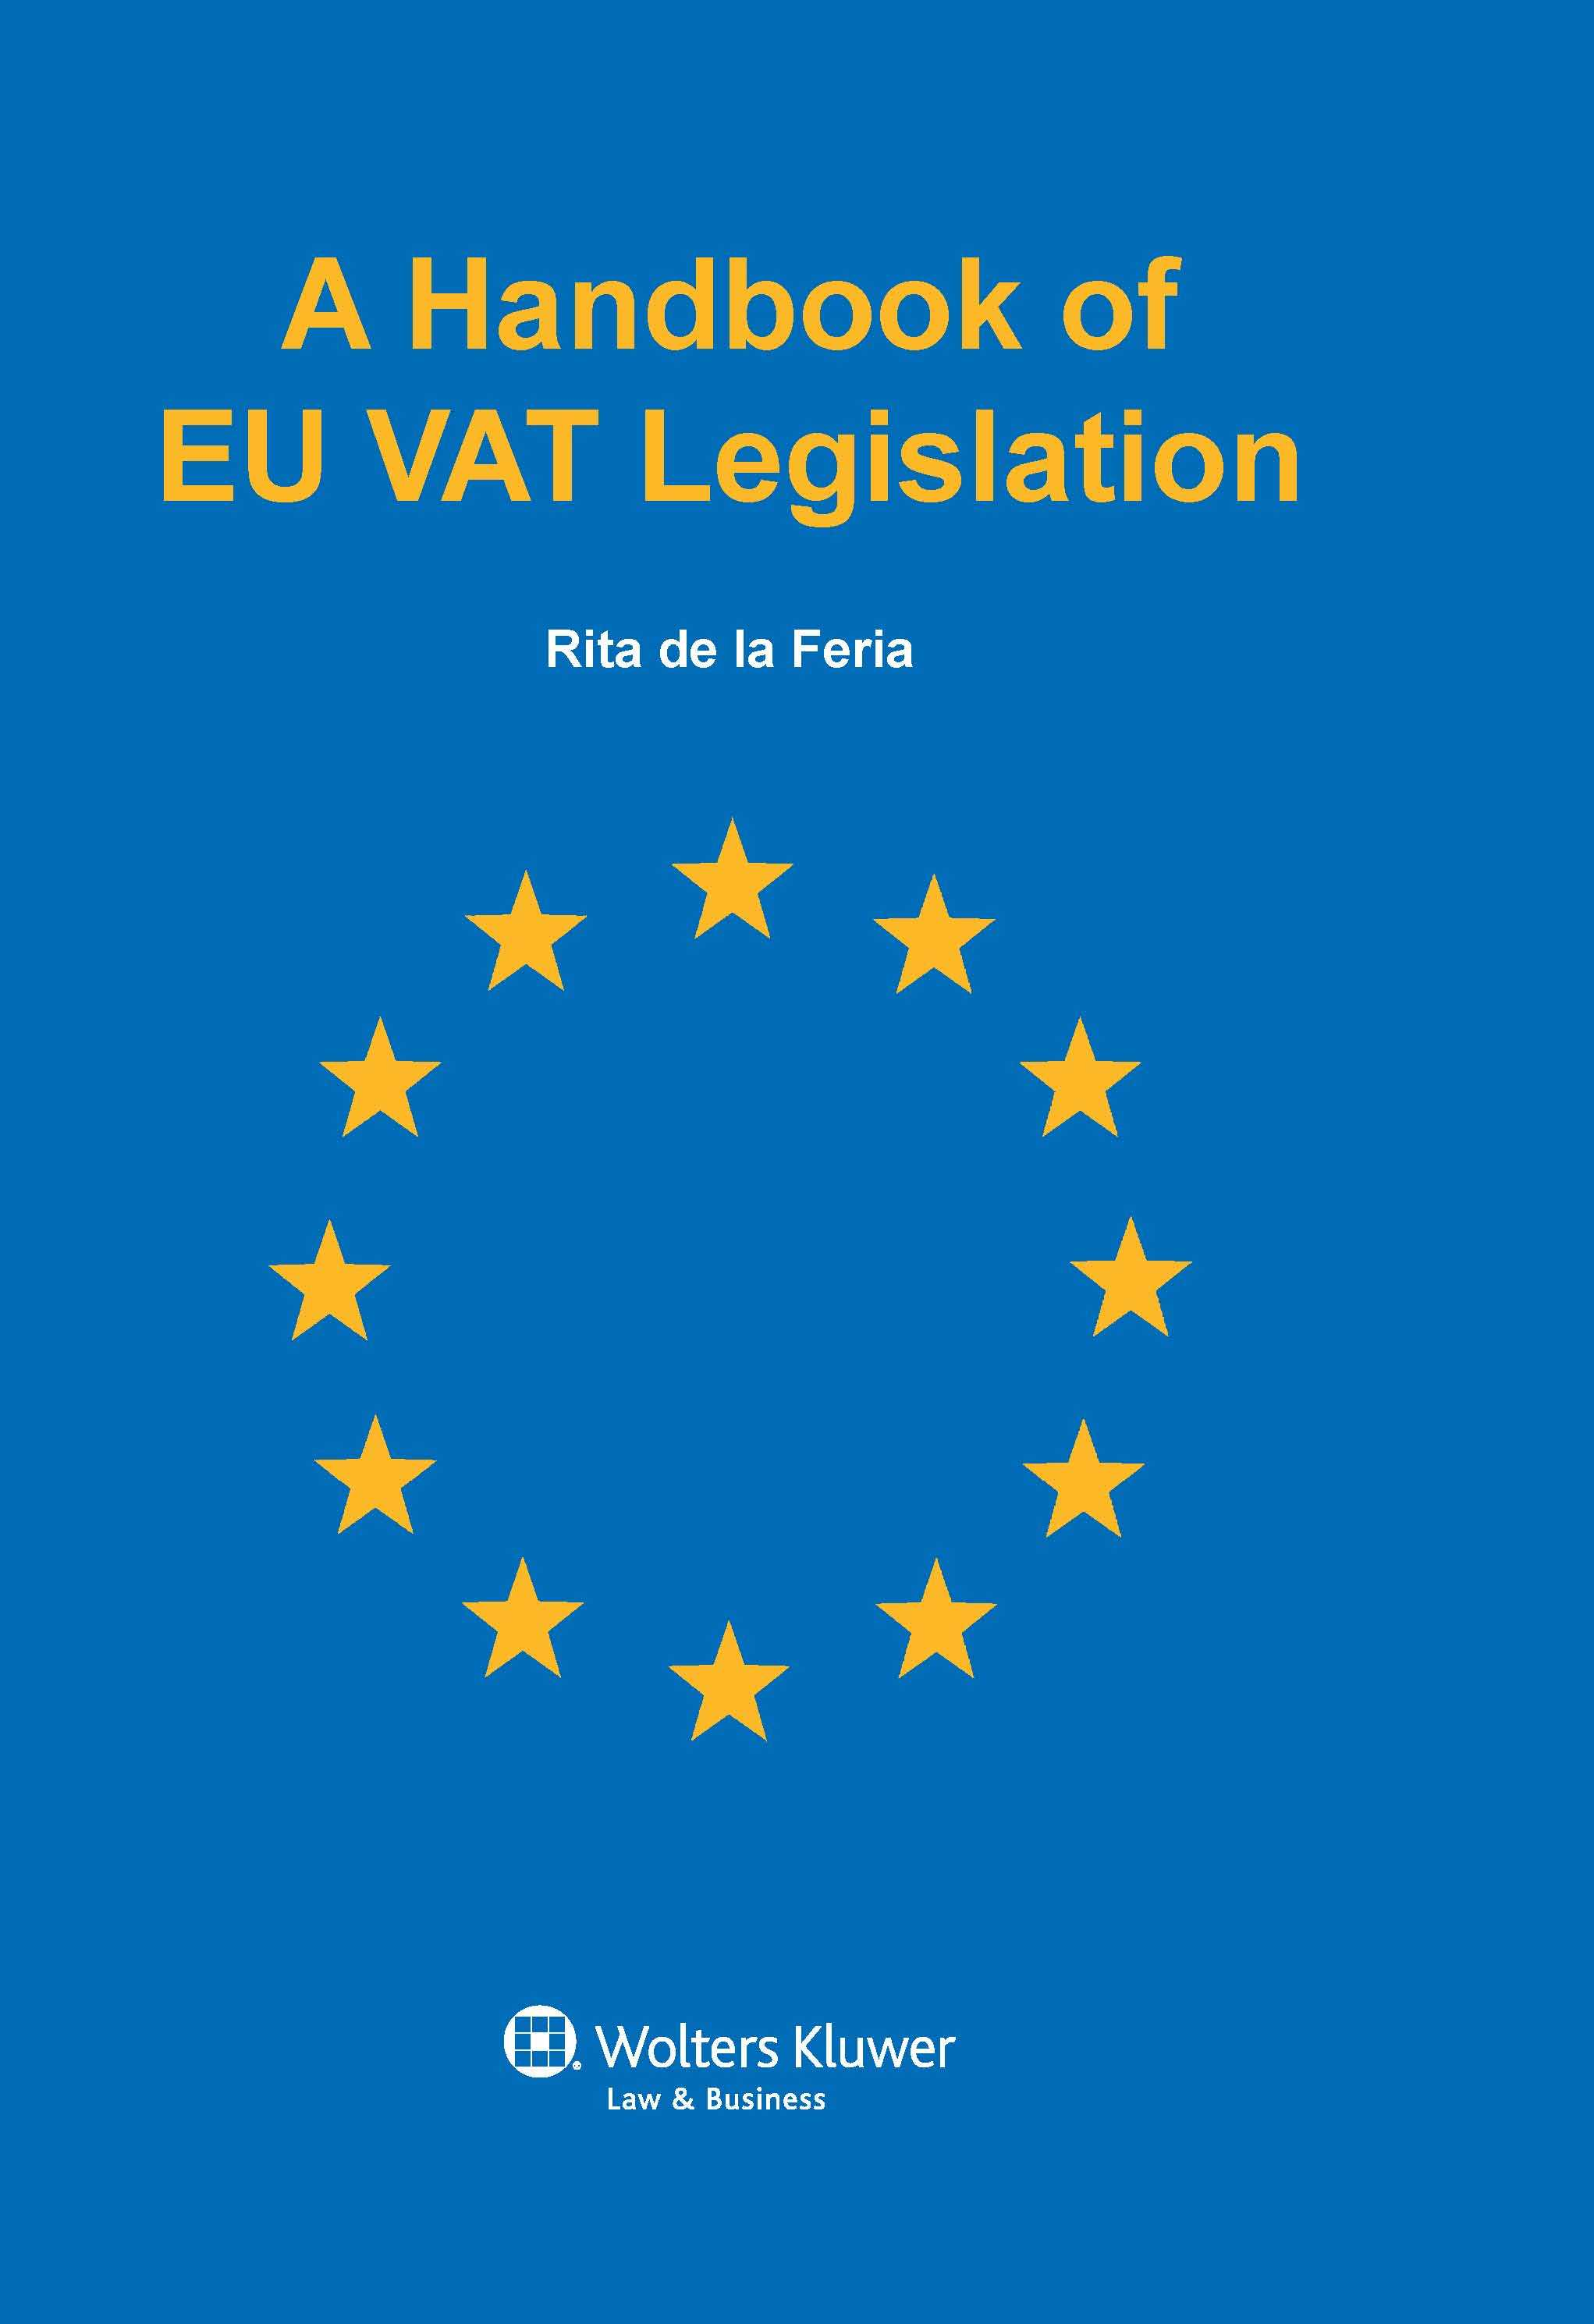 A Handbook EU VAT Legislation